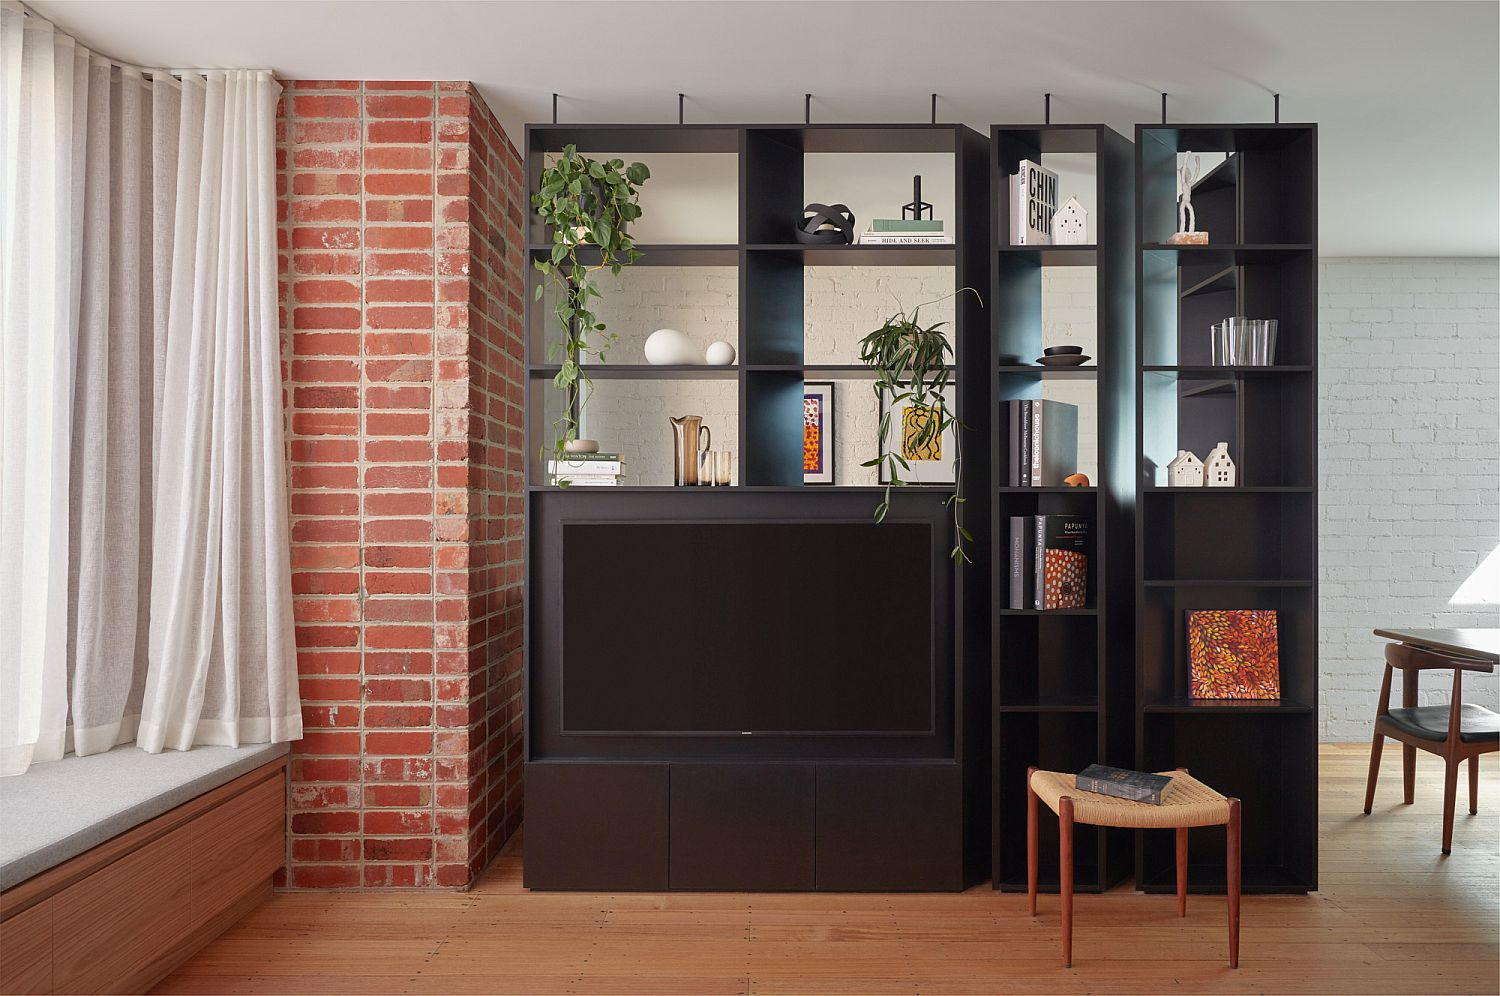 Custom black TV unit and shelving for the living space